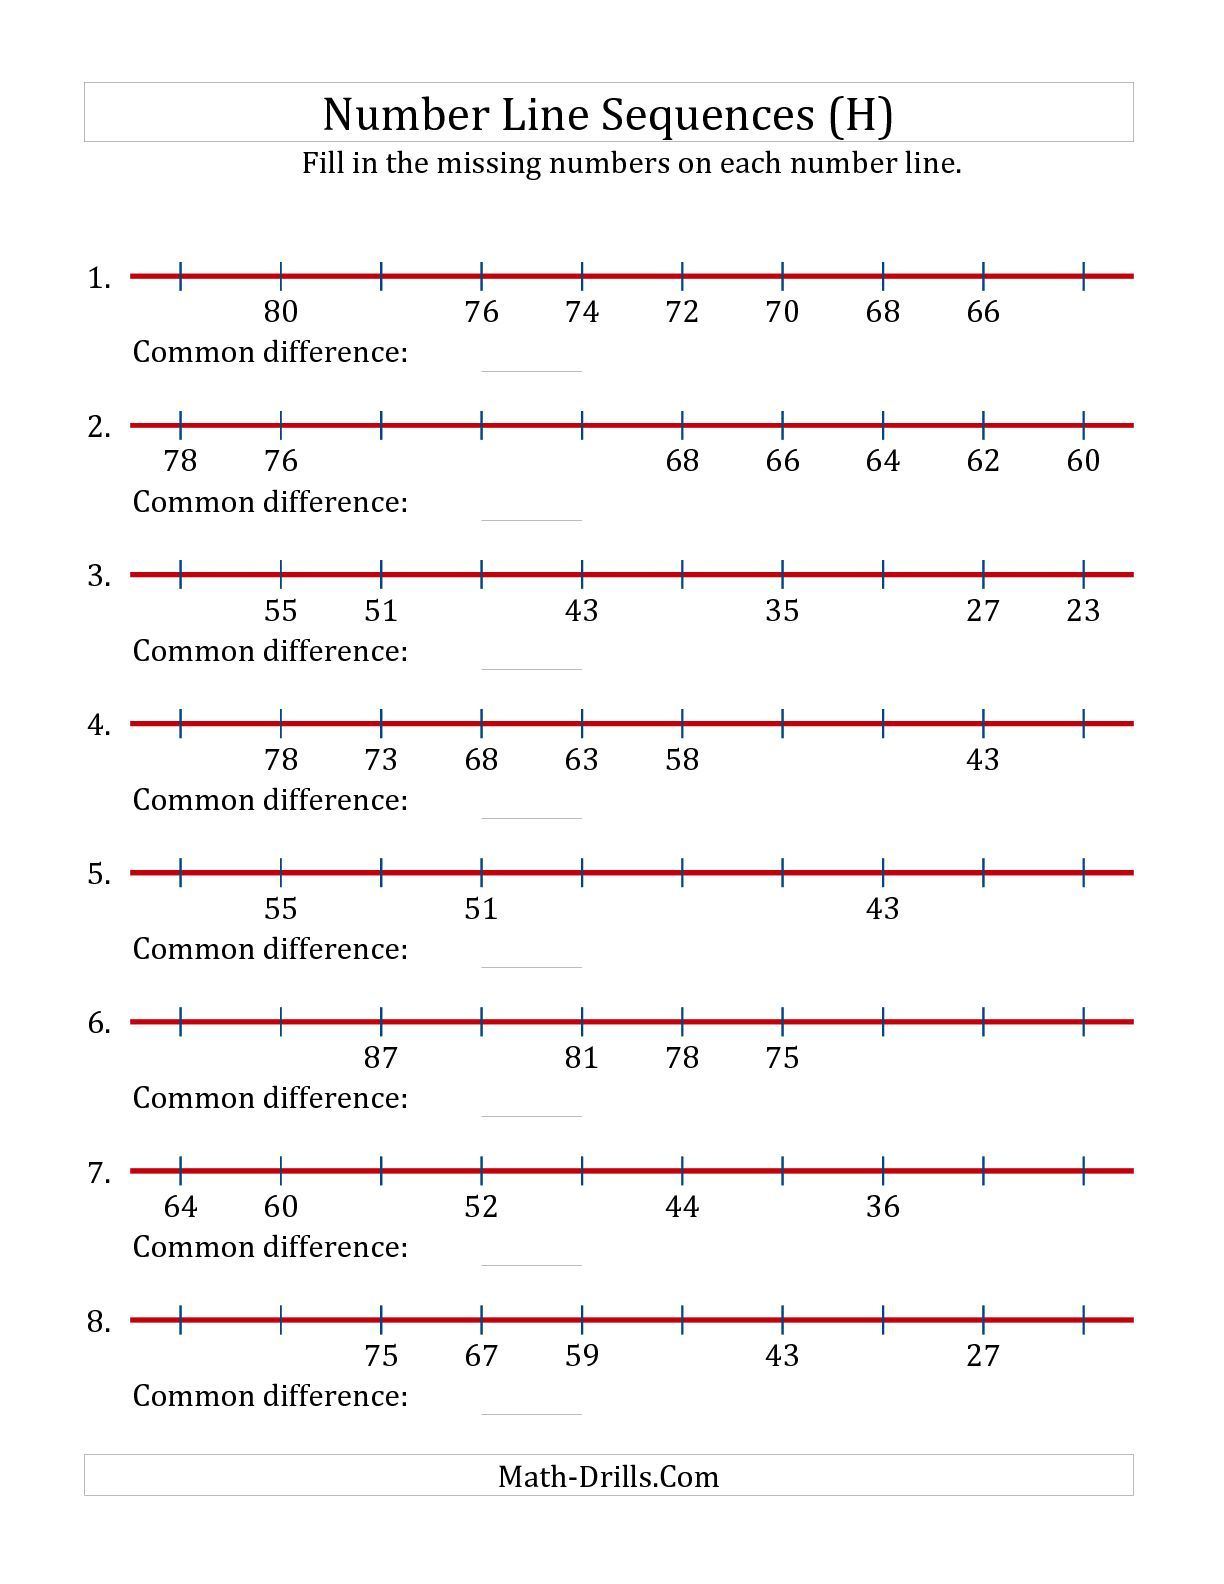 Decreasing Number Line Sequences With Missing Numbers Max 100 H Math Worksheet Freemath